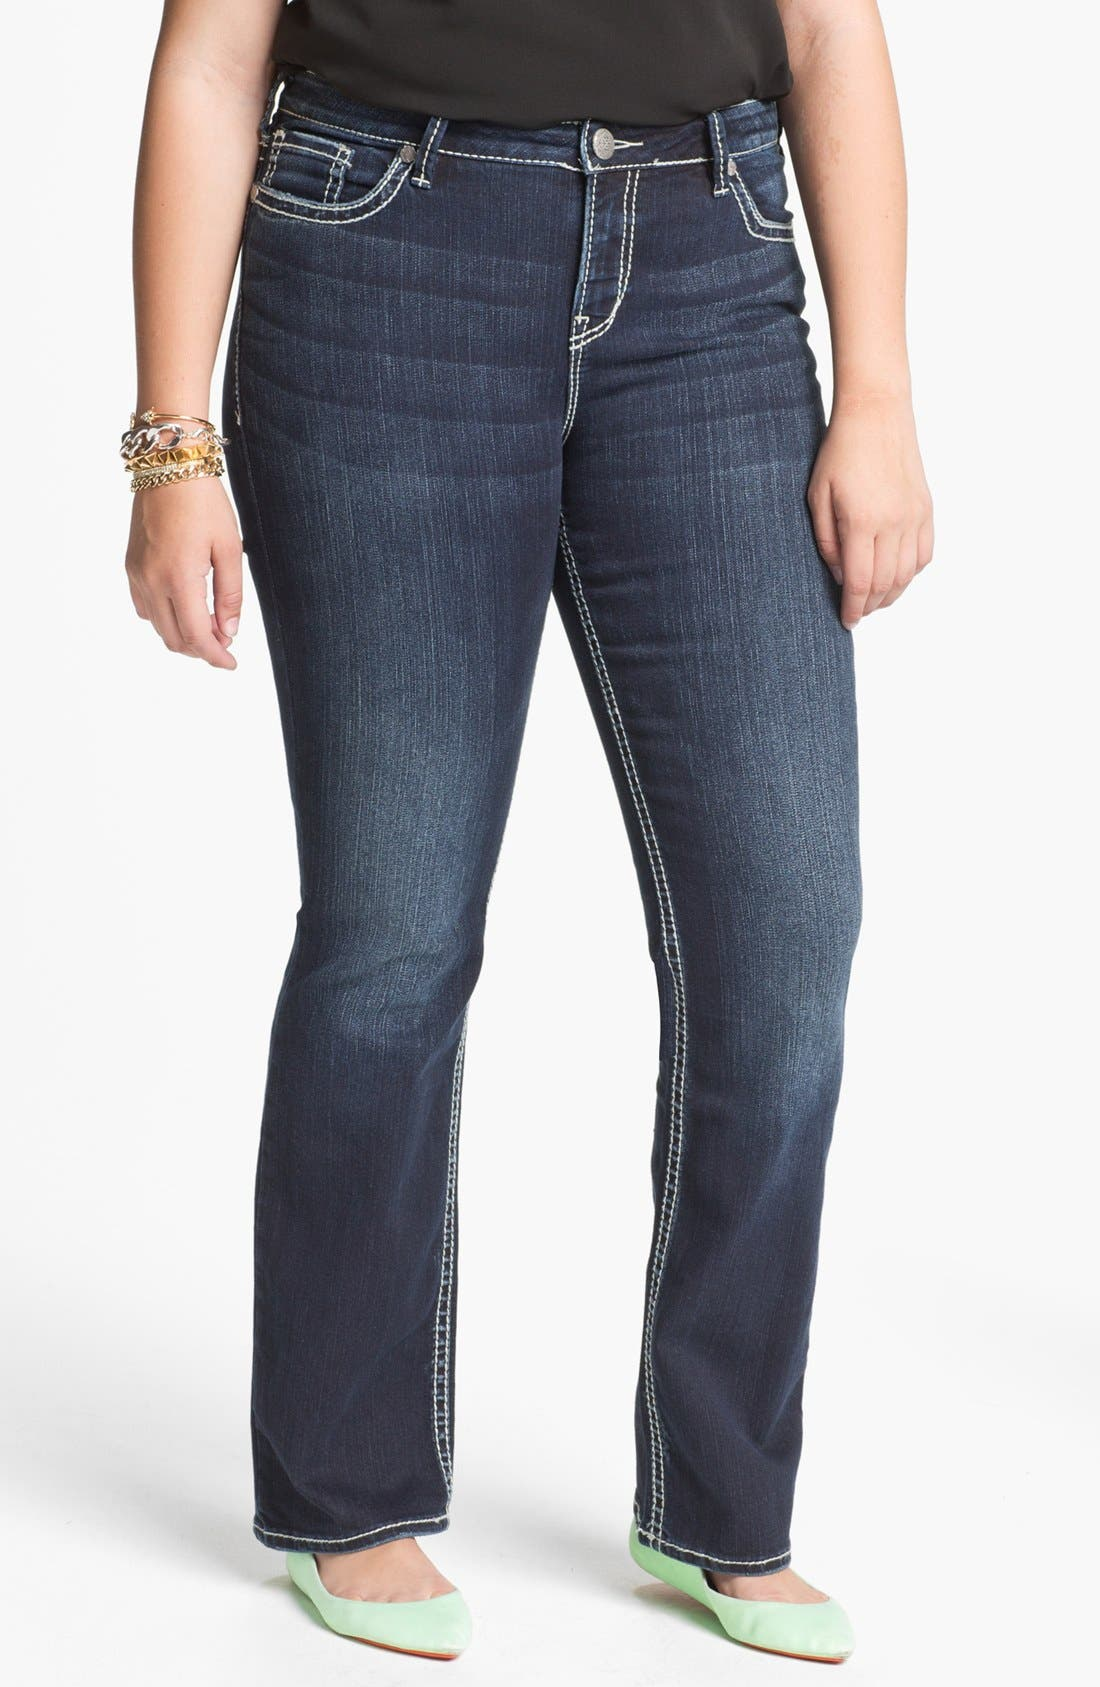 Alternate Image 1 Selected - Silver Jeans Co. 'Natsuki' Bootcut Jeans (Juniors Plus)